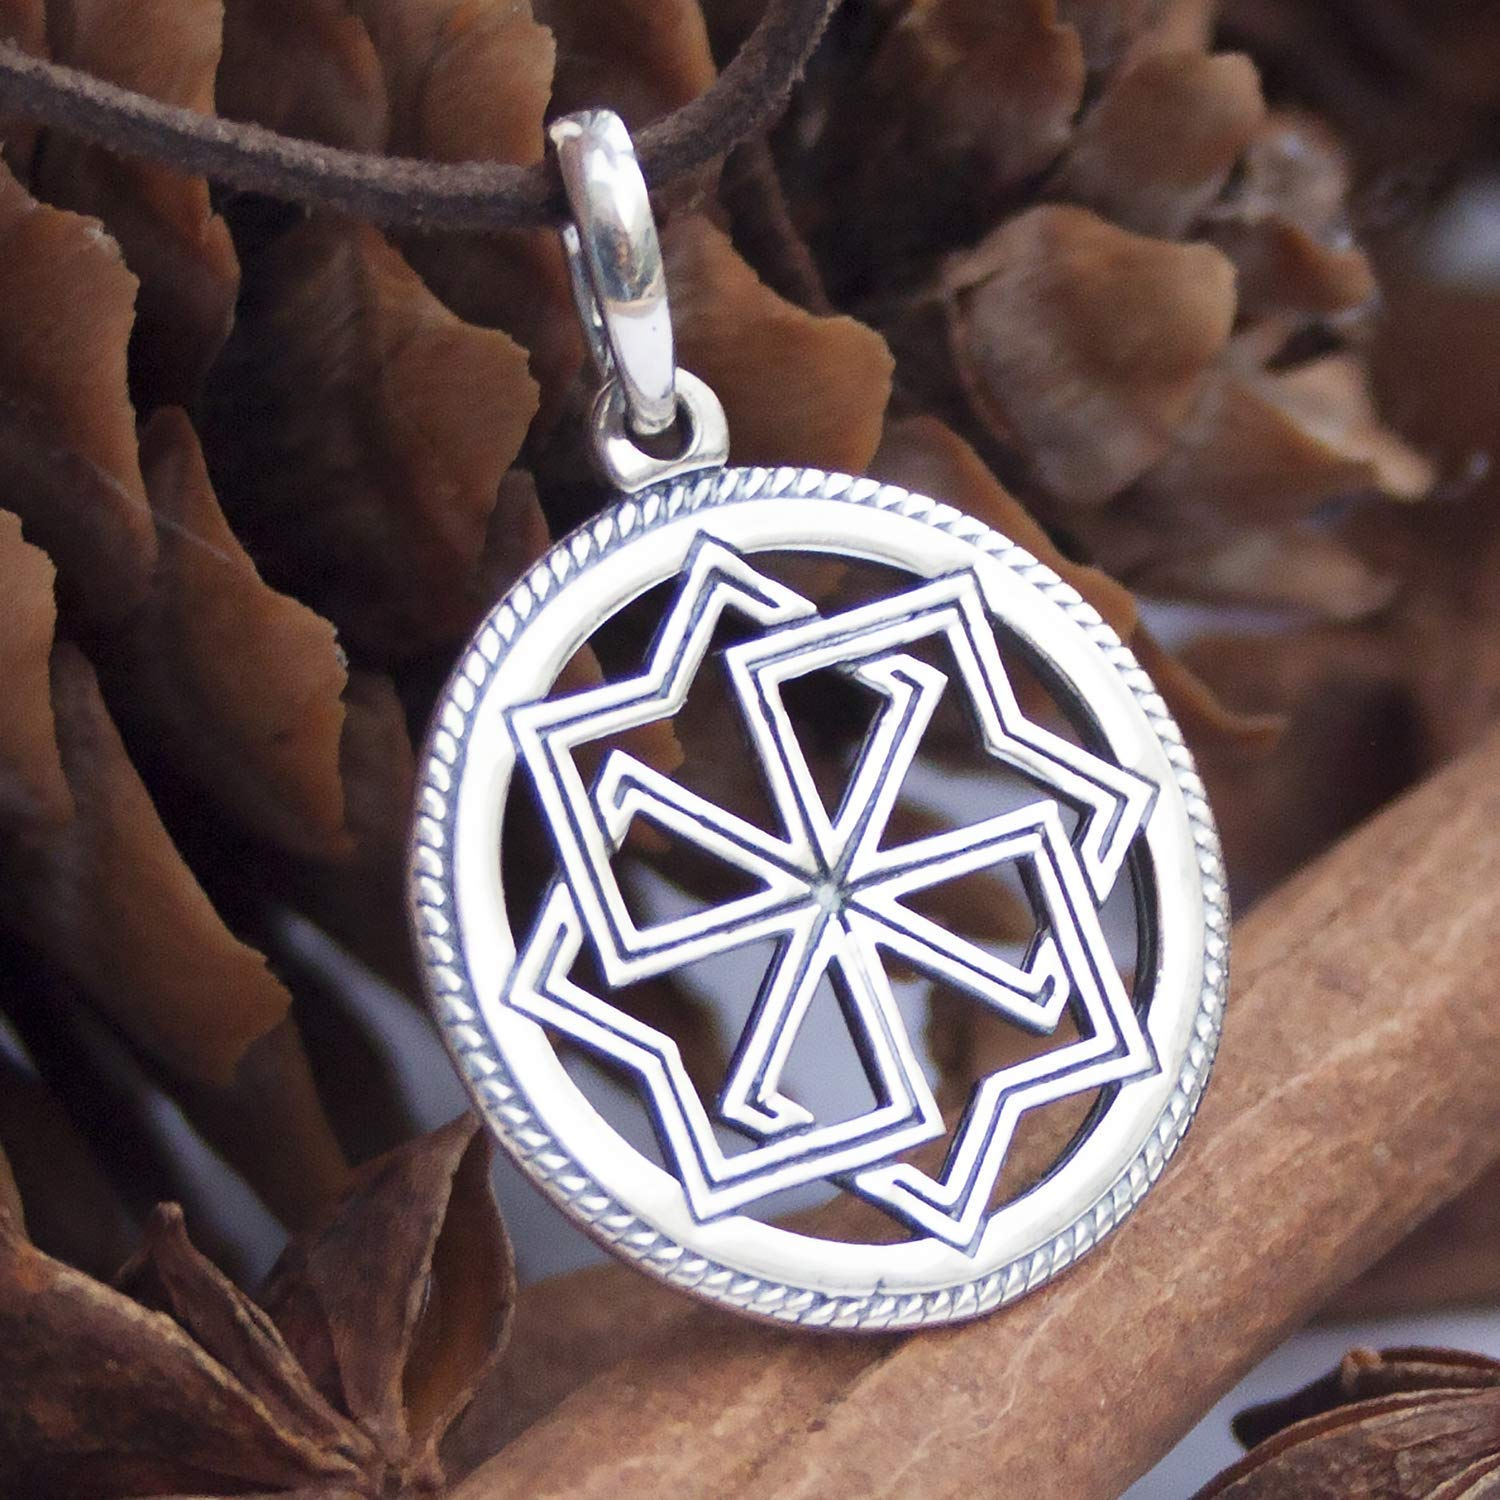 ALATYR STAR necklace Sun necklace Symbol of POWER Protection necklace Slavic jewelry Rune Magical necklace Norse jewelry Viking jewelry